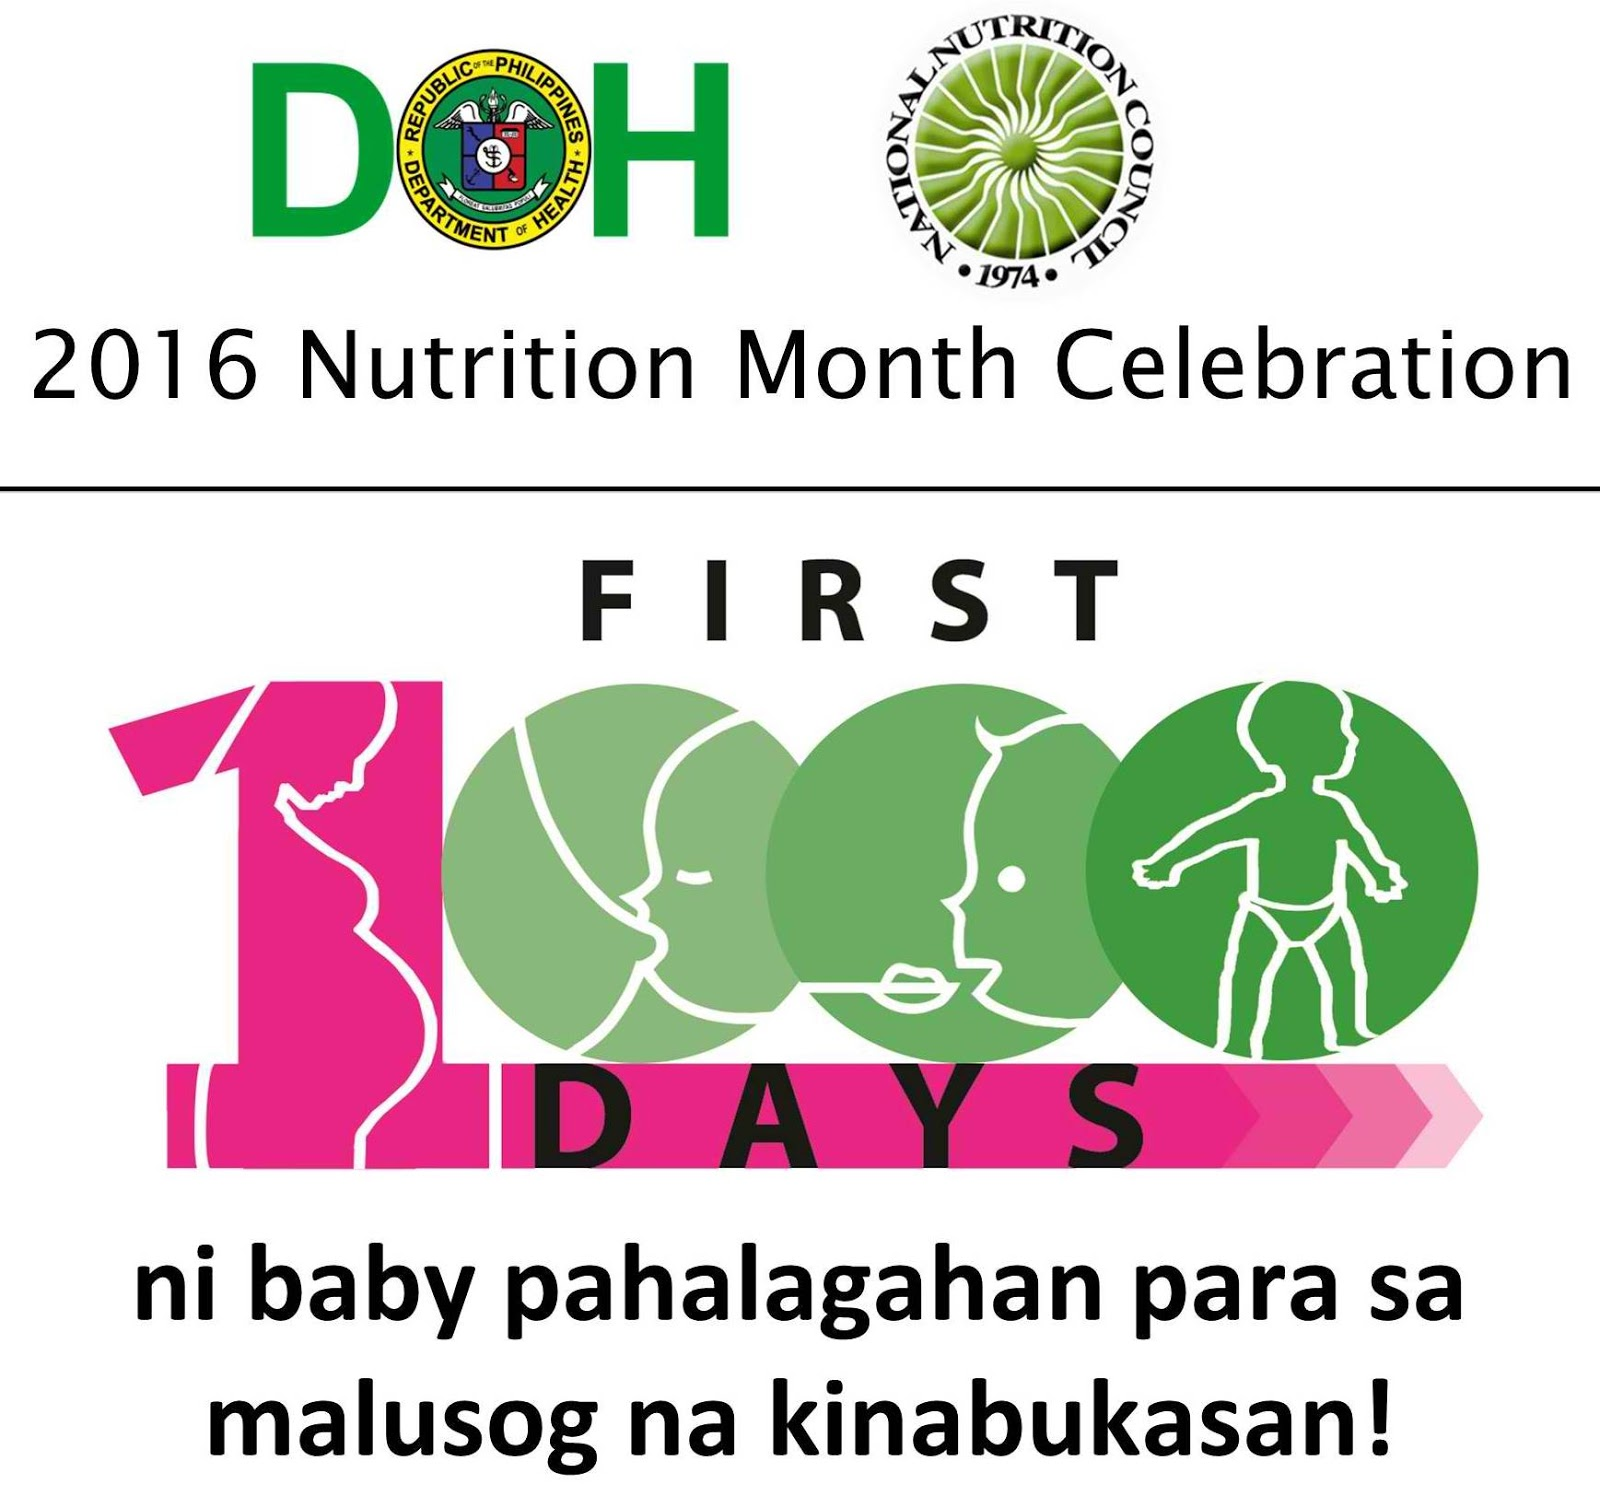 philippines nutrion month theme The nutrition month theme in 2018 is ugaliing magtanim, sapat na nutrisyon aanihin according to the national nutrition council (nnc) of the philippines this theme focuses on food production at home through the family's own garden.